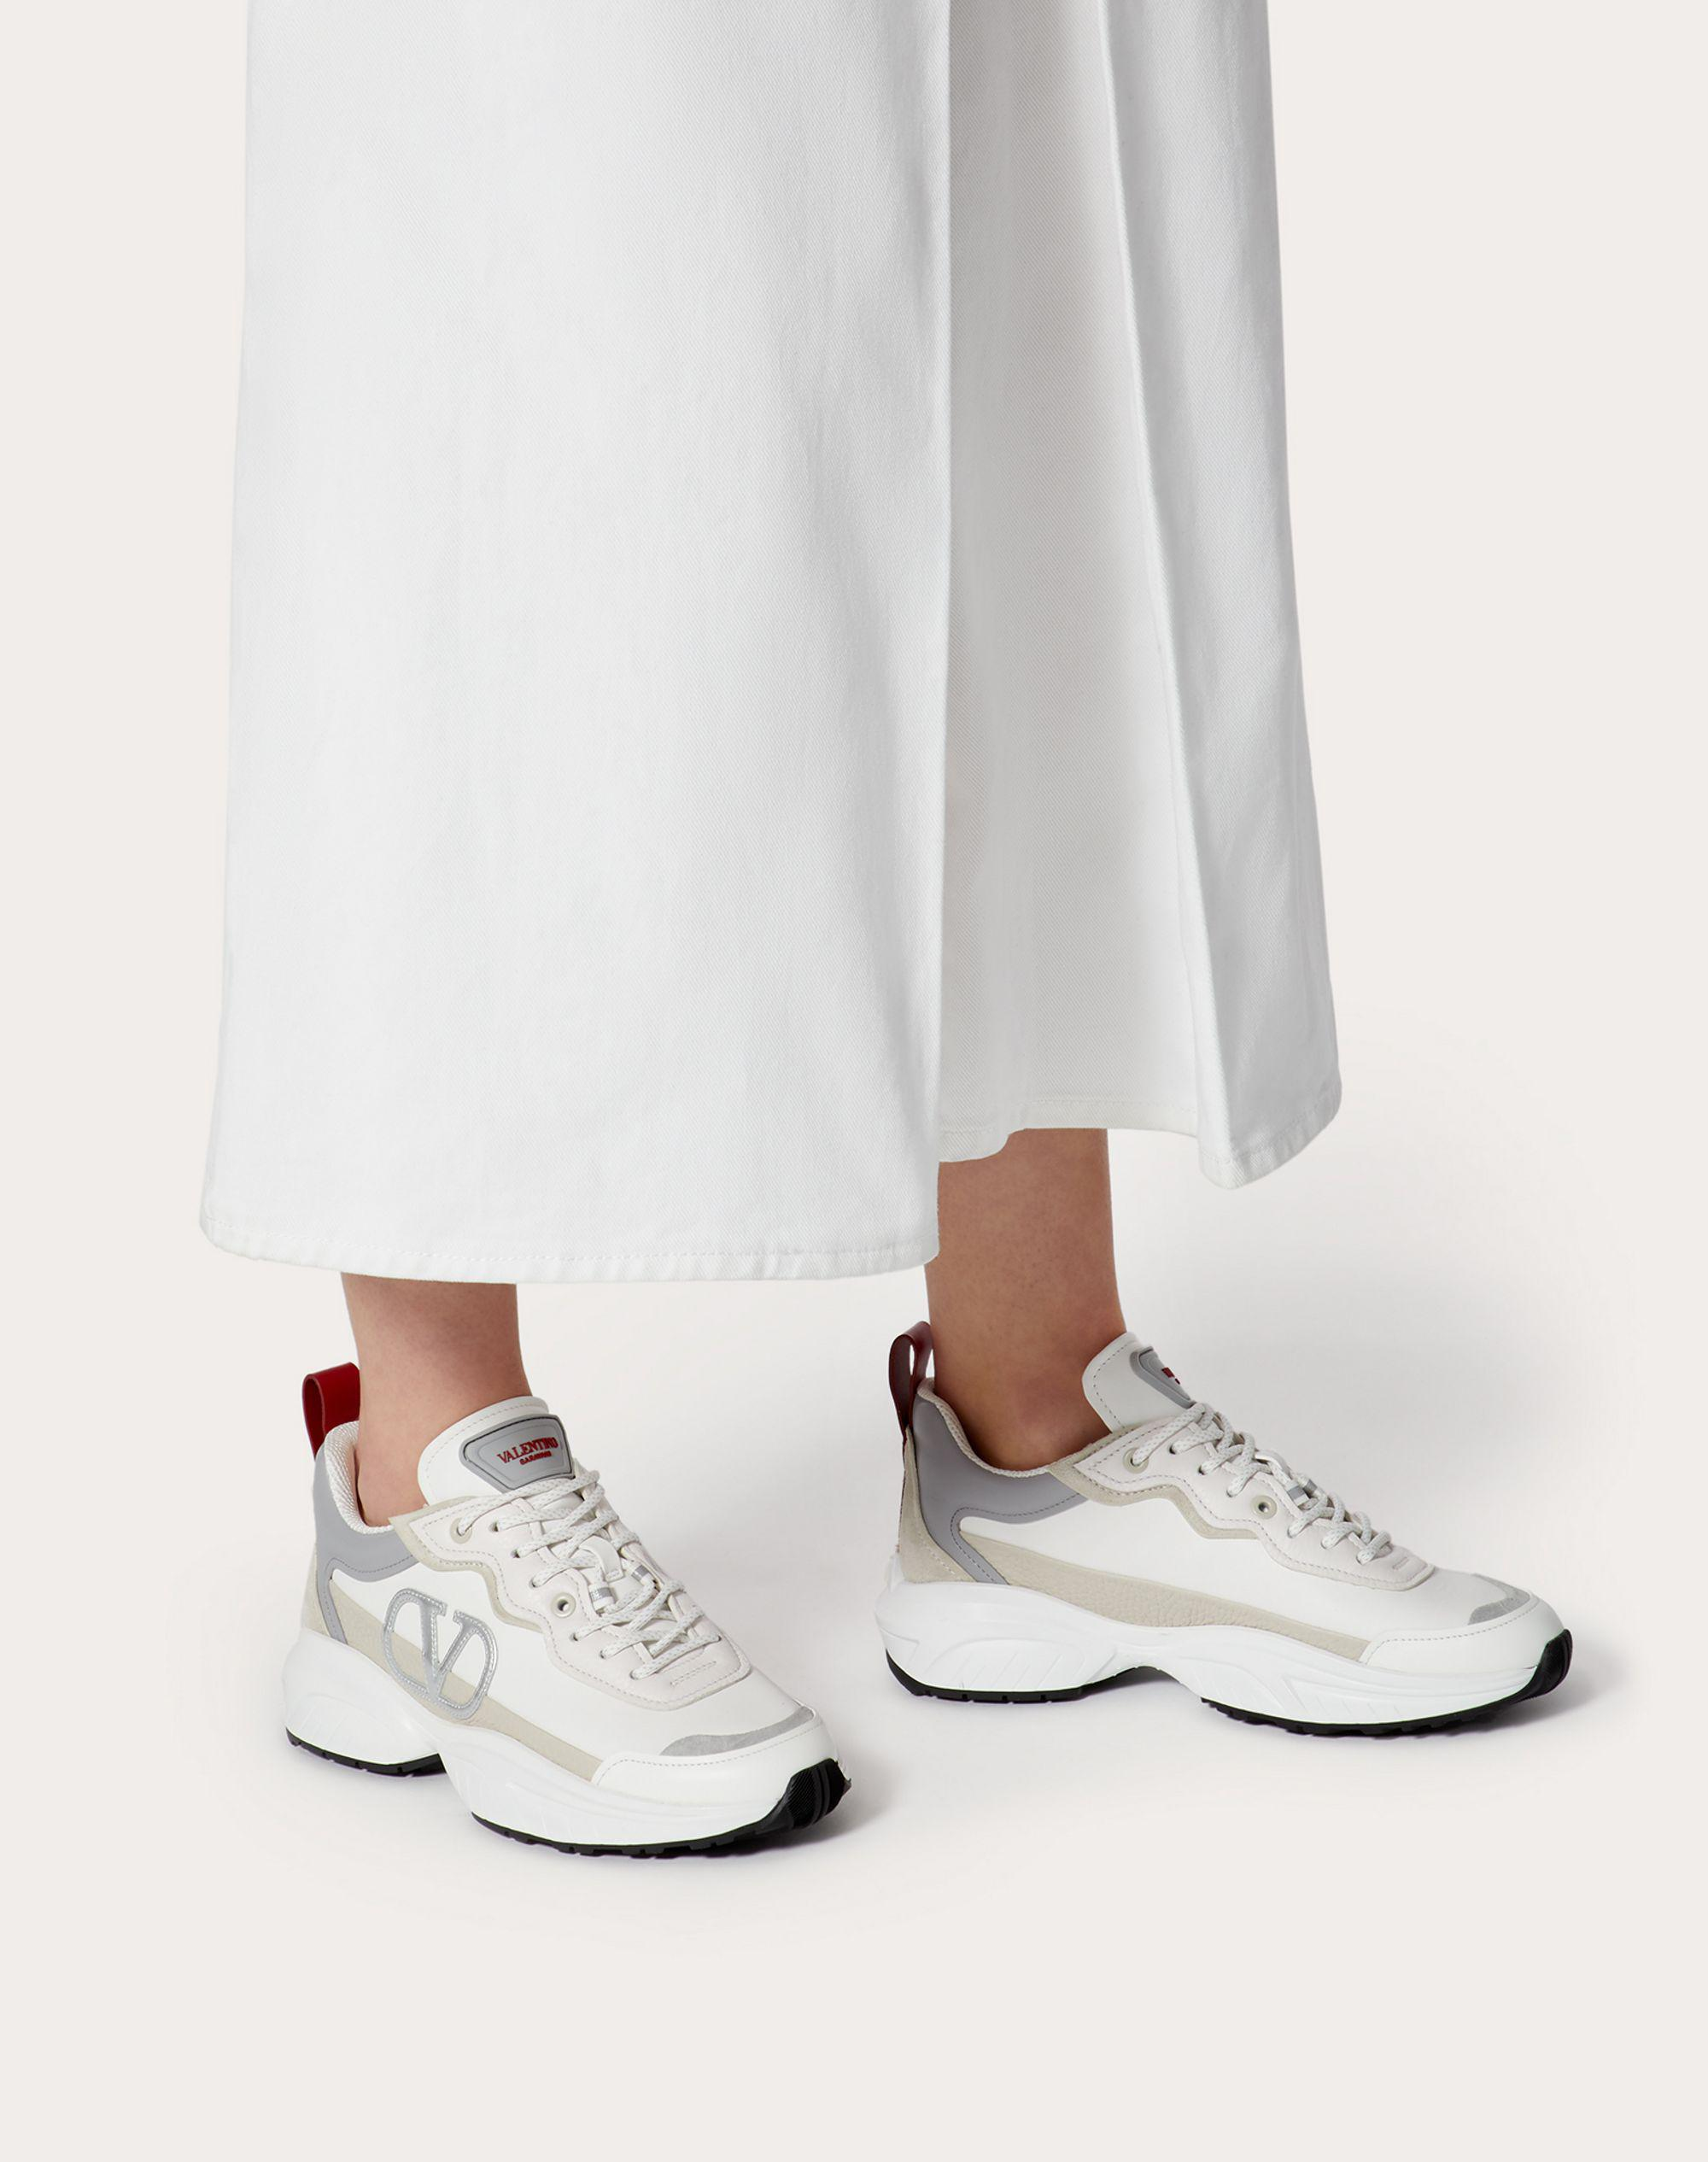 SHEGOES Sneaker in split leather and calfskin leather 5